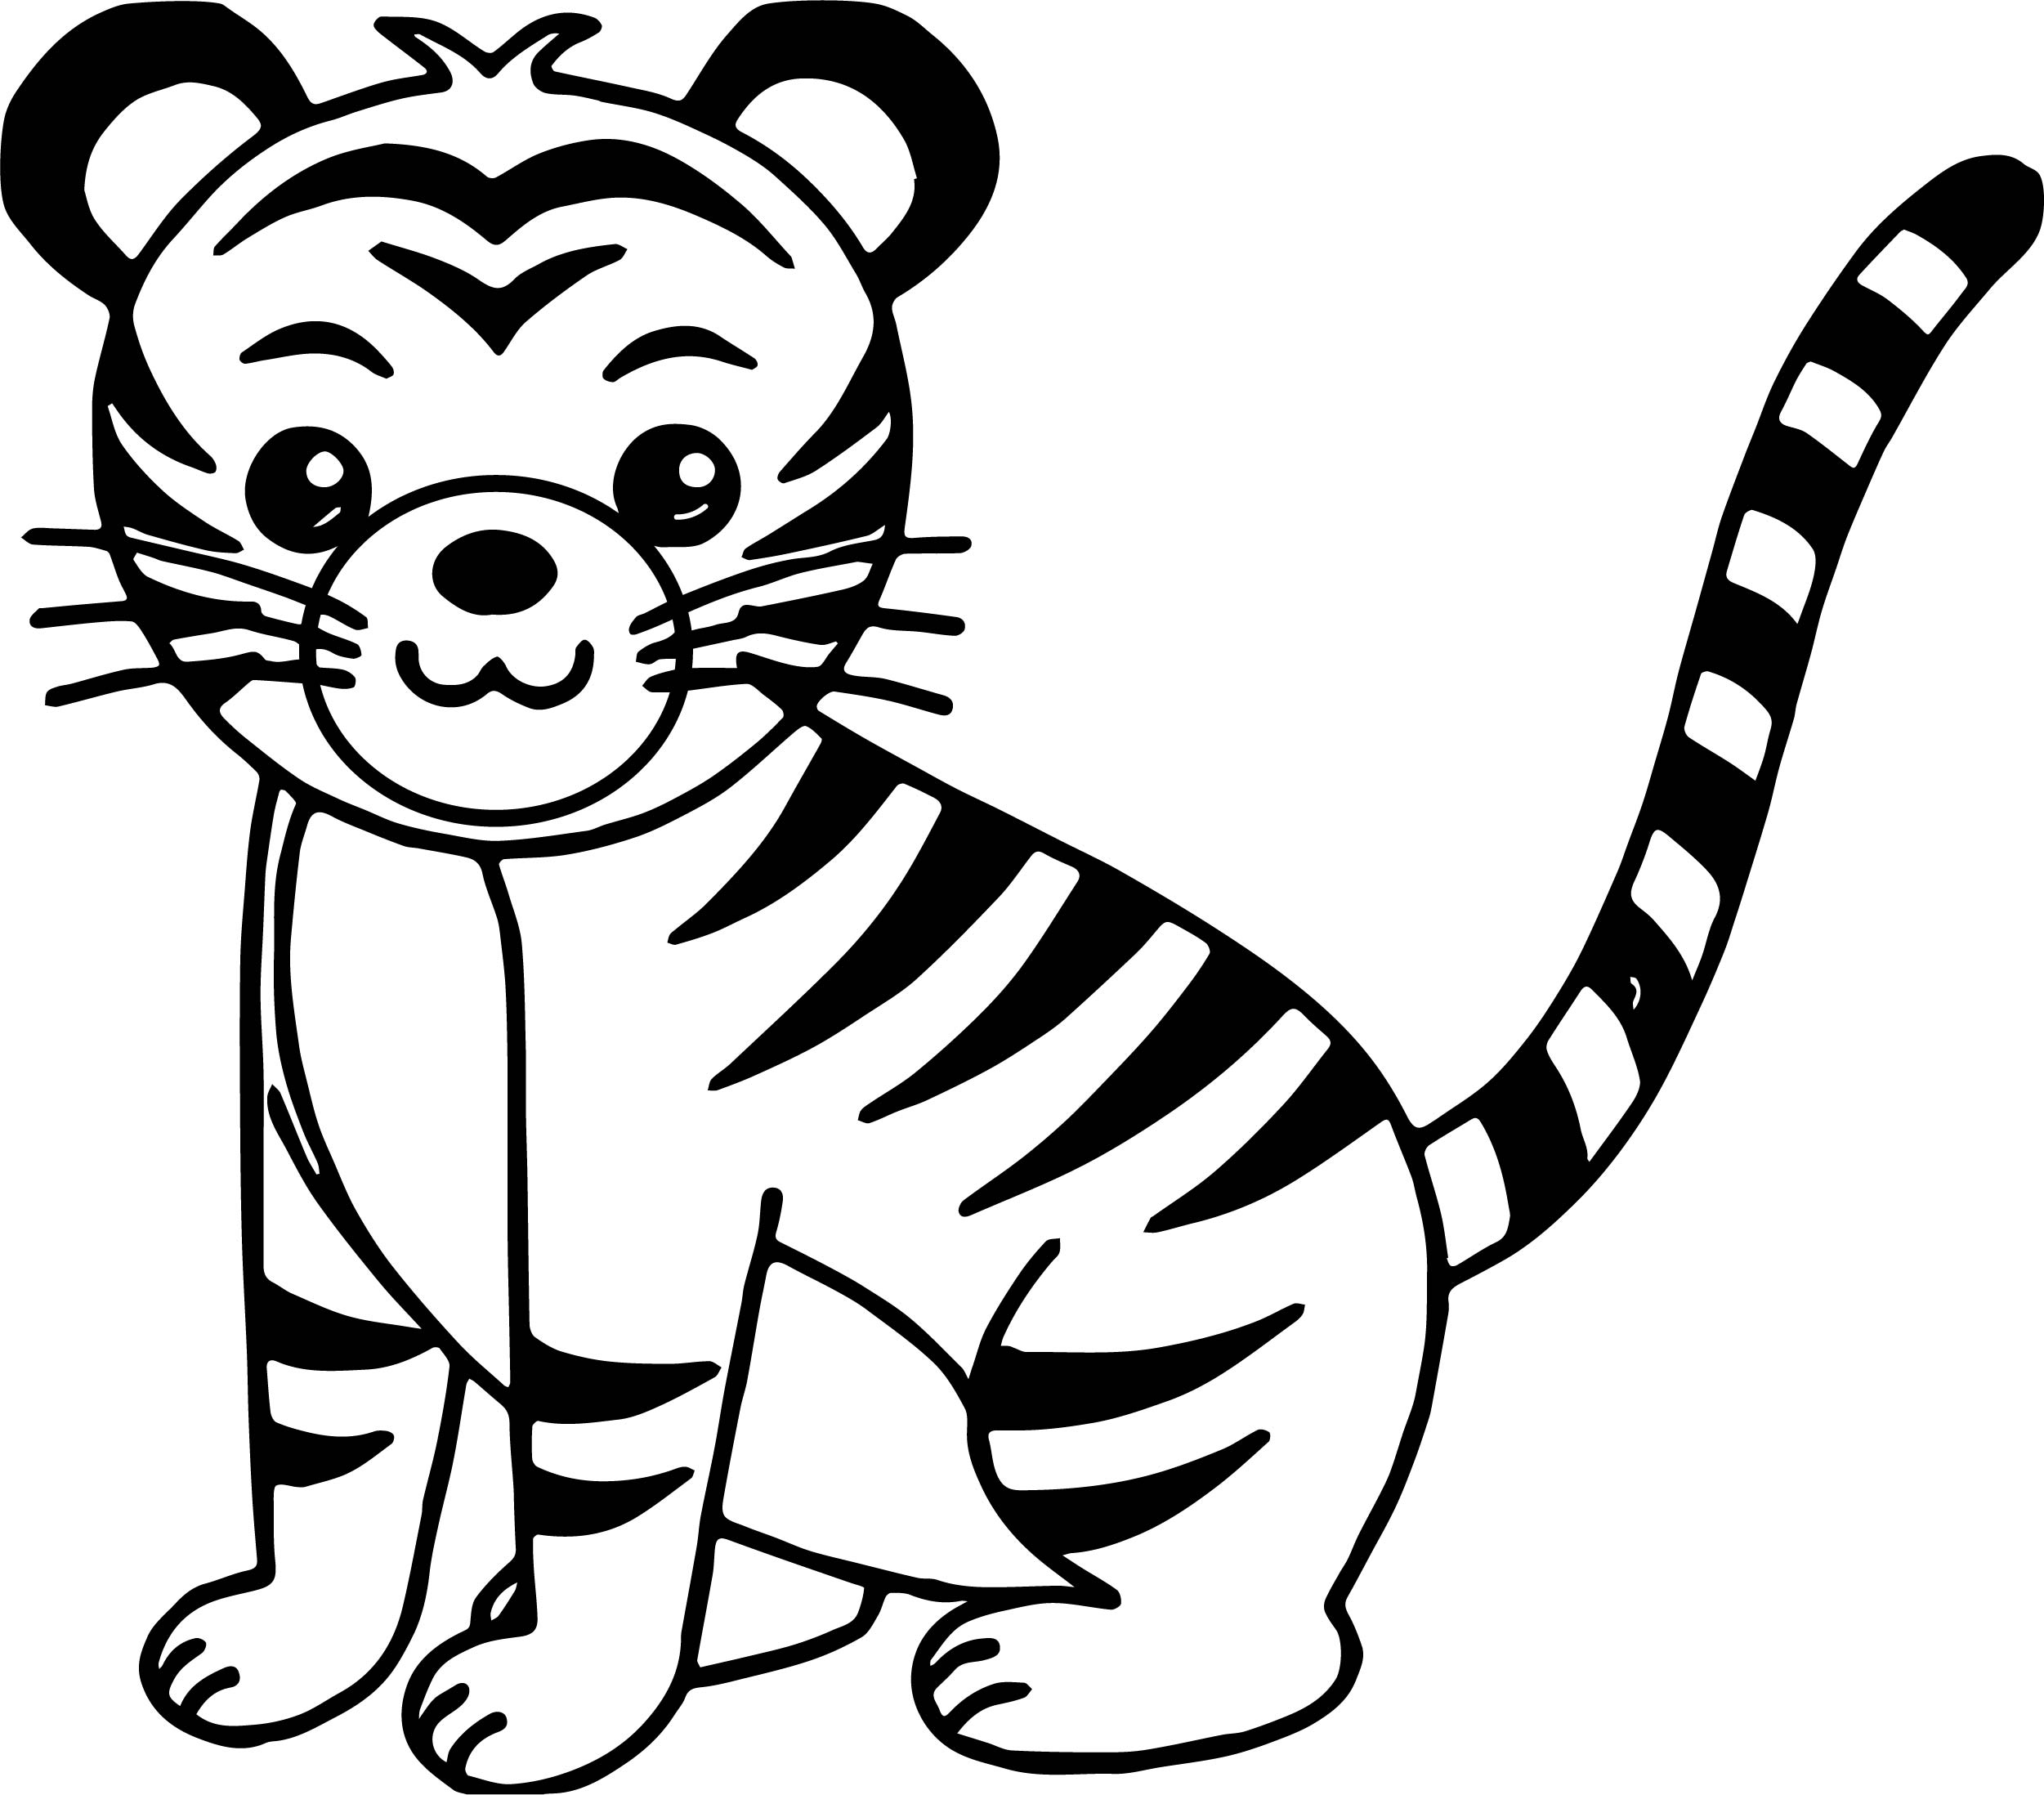 tiger pictures to color free printable tiger coloring pages for kids tiger color pictures to